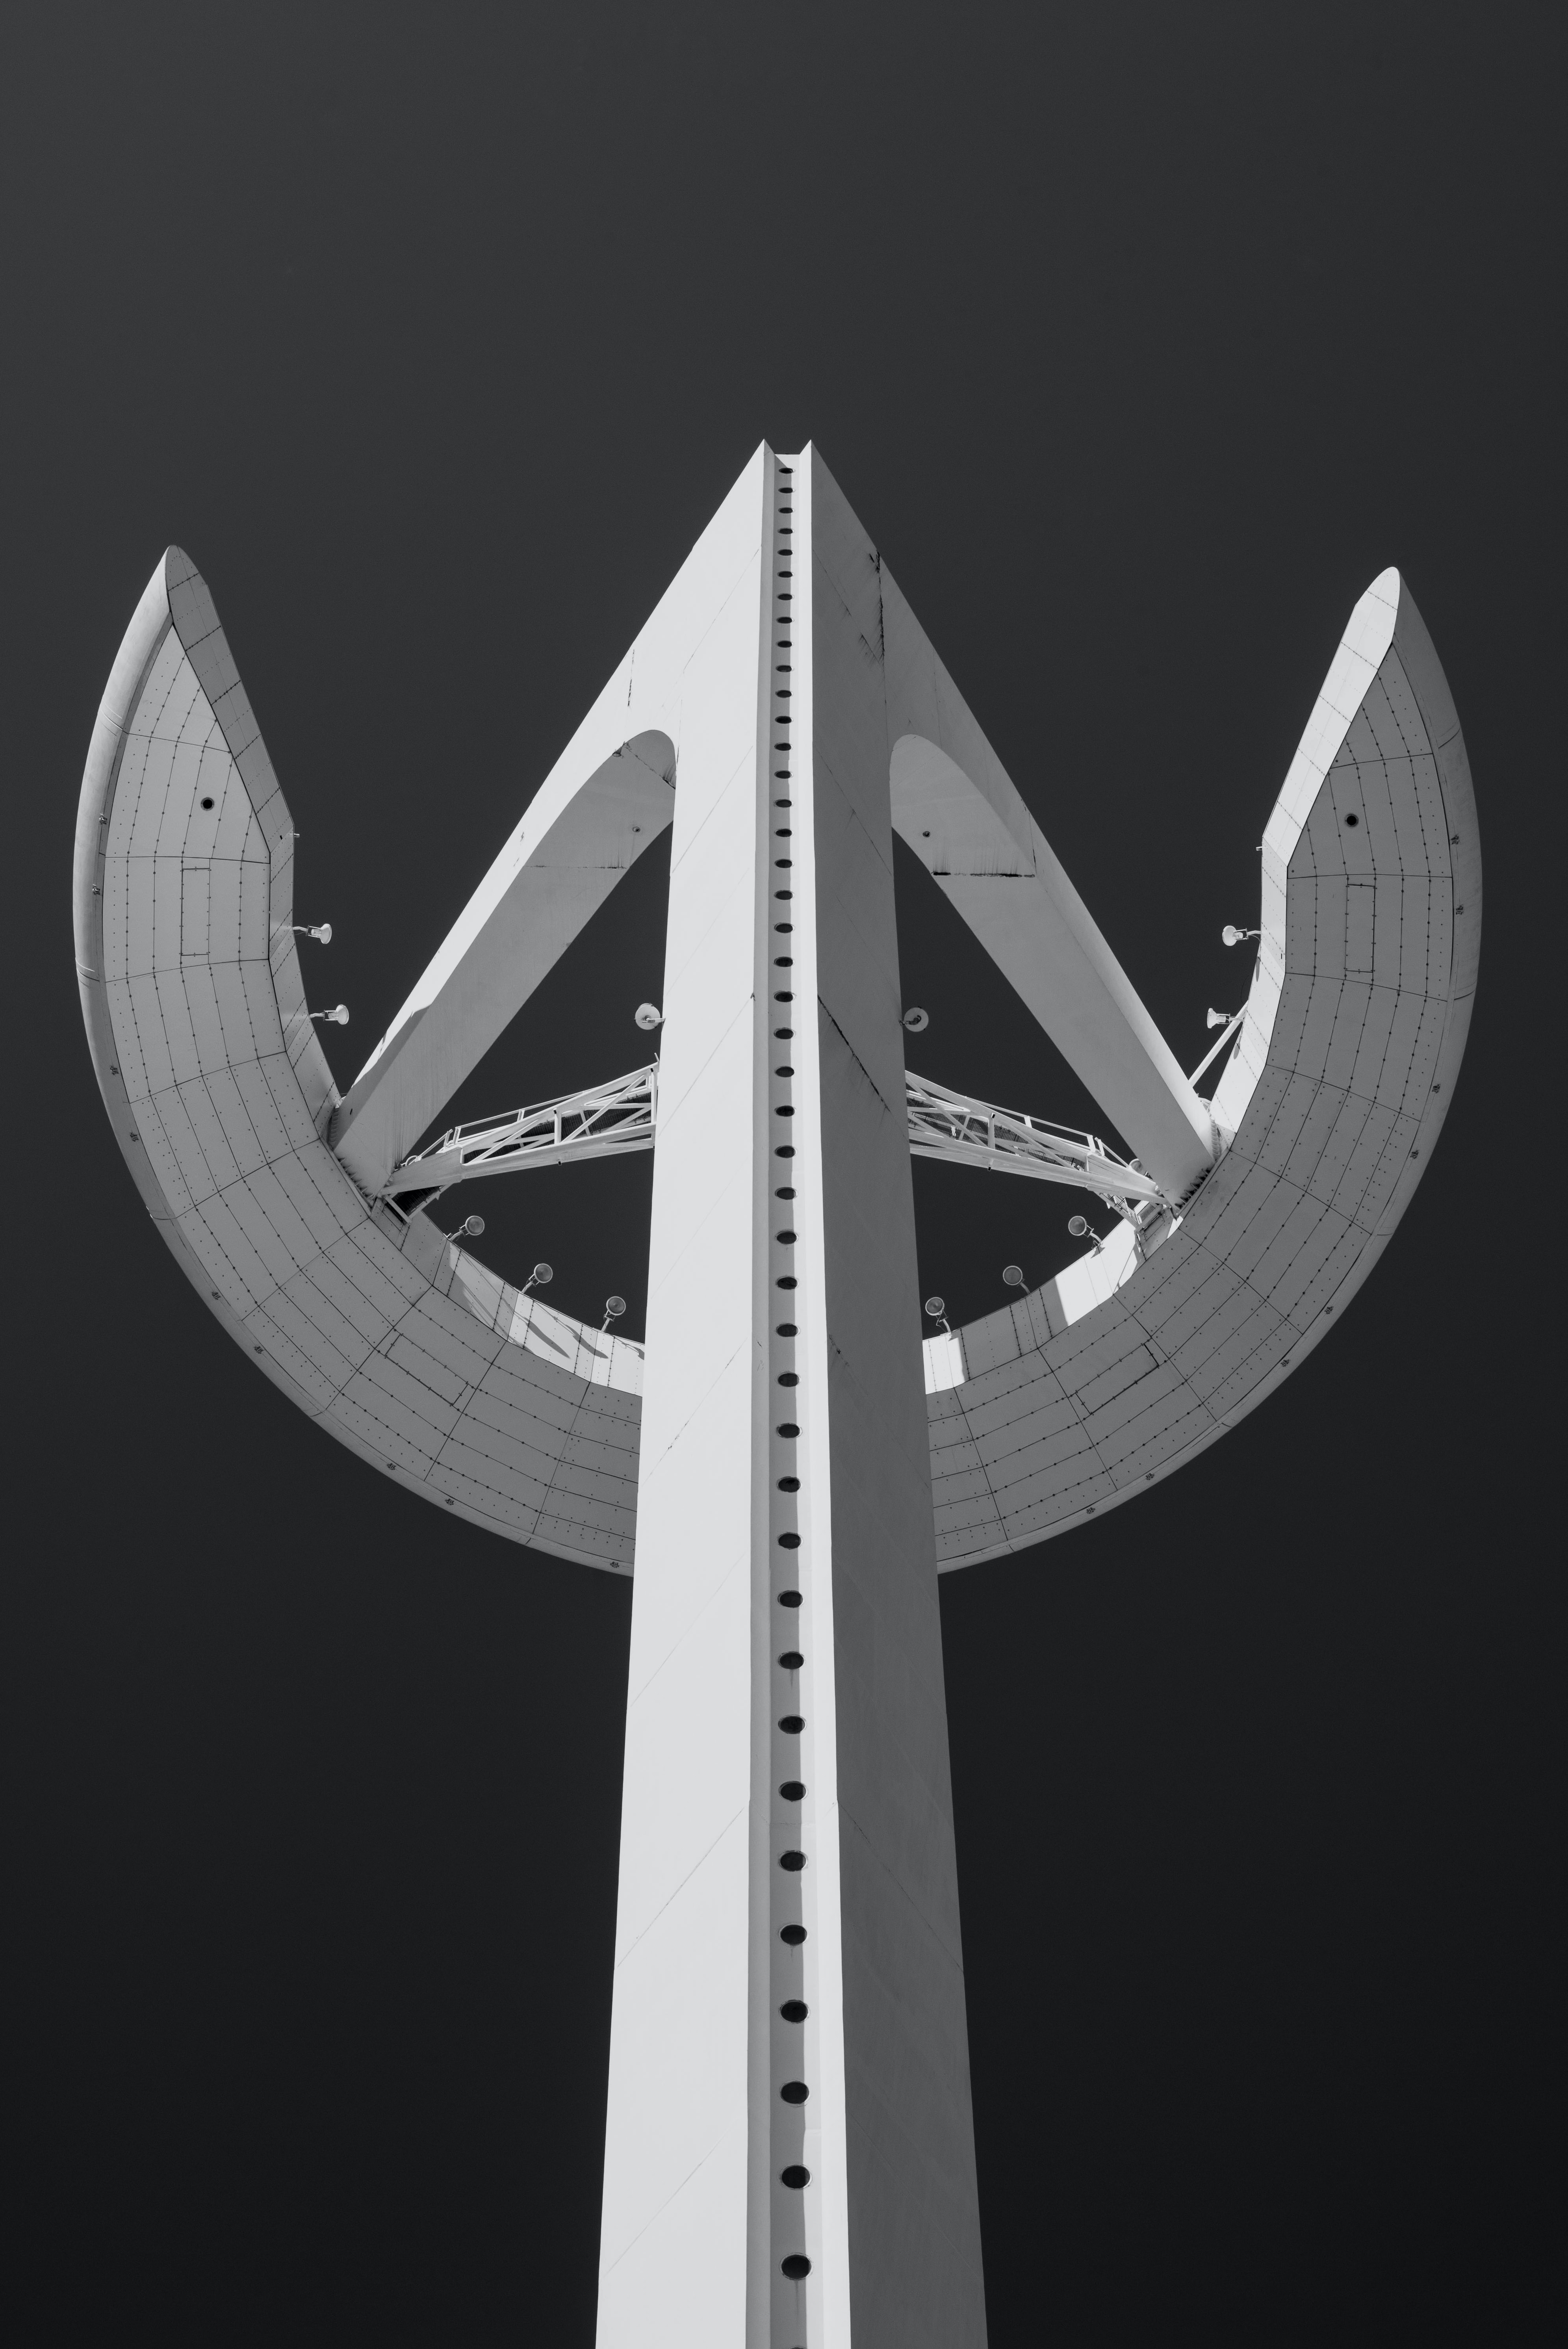 Black and white shot of Montjuïc communications tower from below in Barcelona